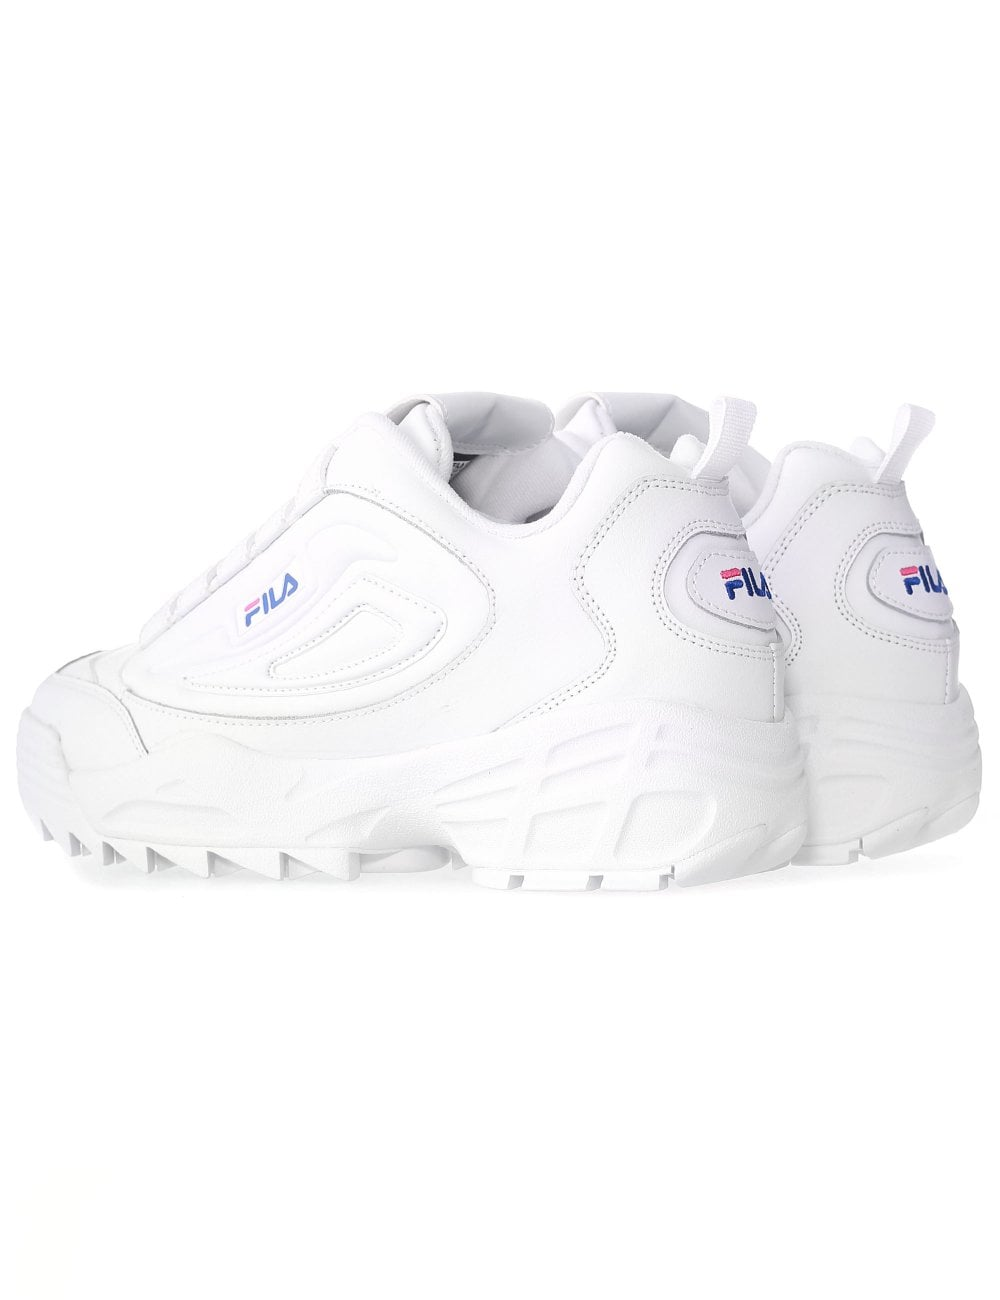 Womens Fila Disruptor 3 Trainers Magenta Blue White Trainers Shoes